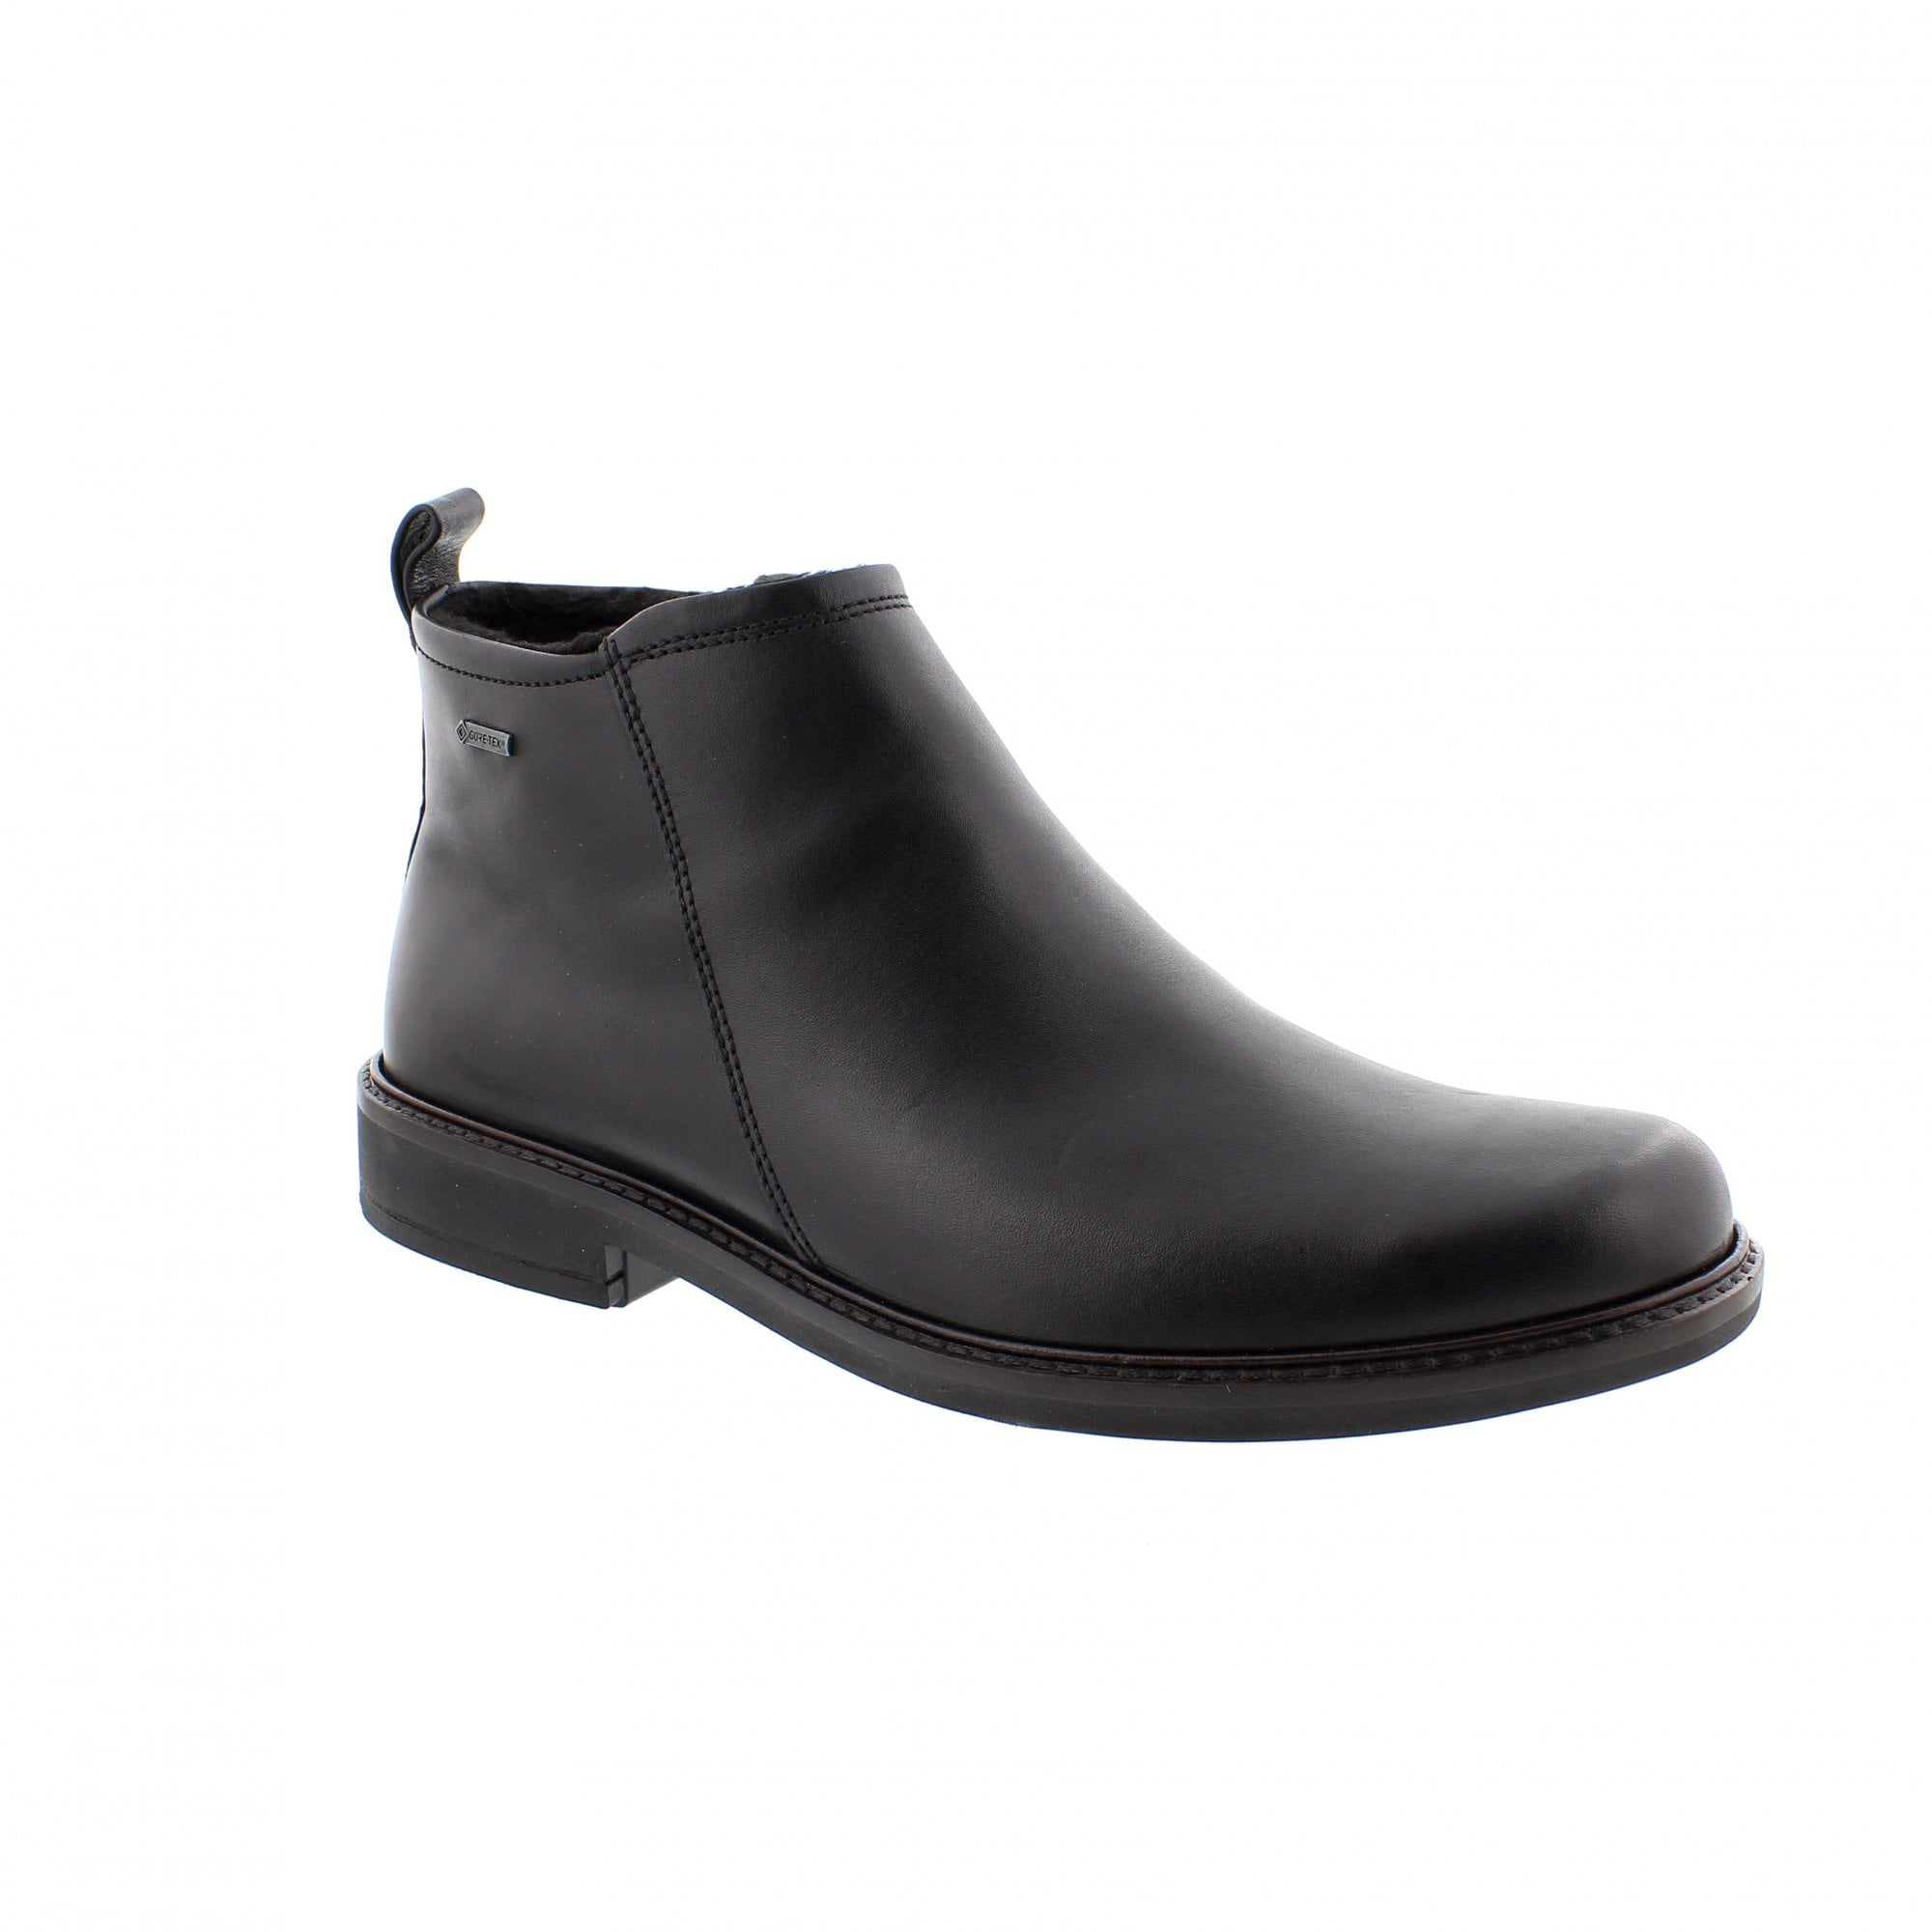 b6880a37f4b54 Ecco Holton 621194-11001 Mens Ankle Boots